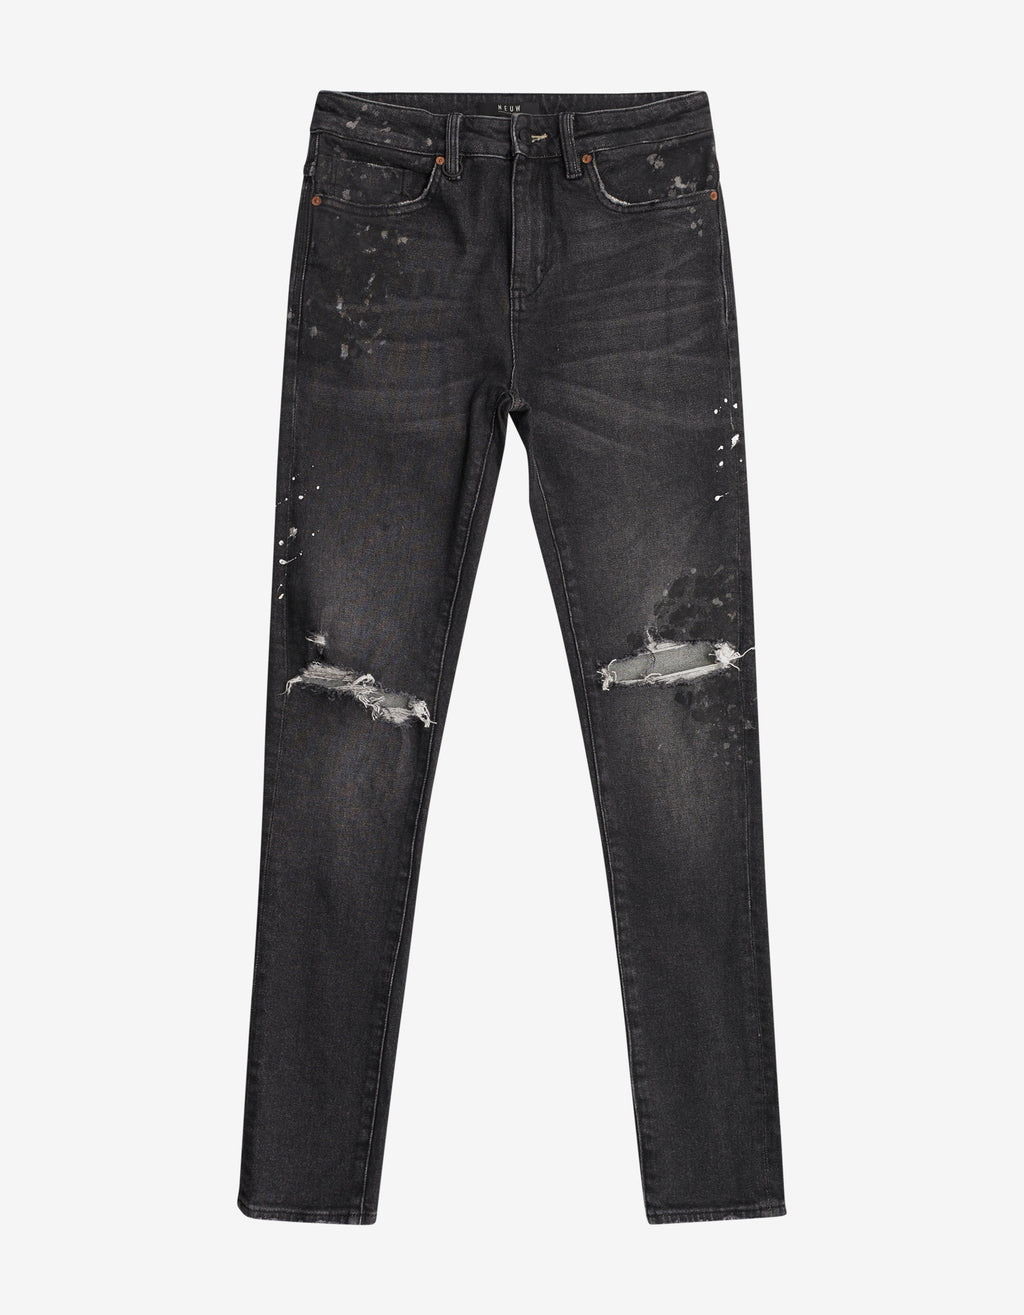 Rebel Skinny Art Black Jeans